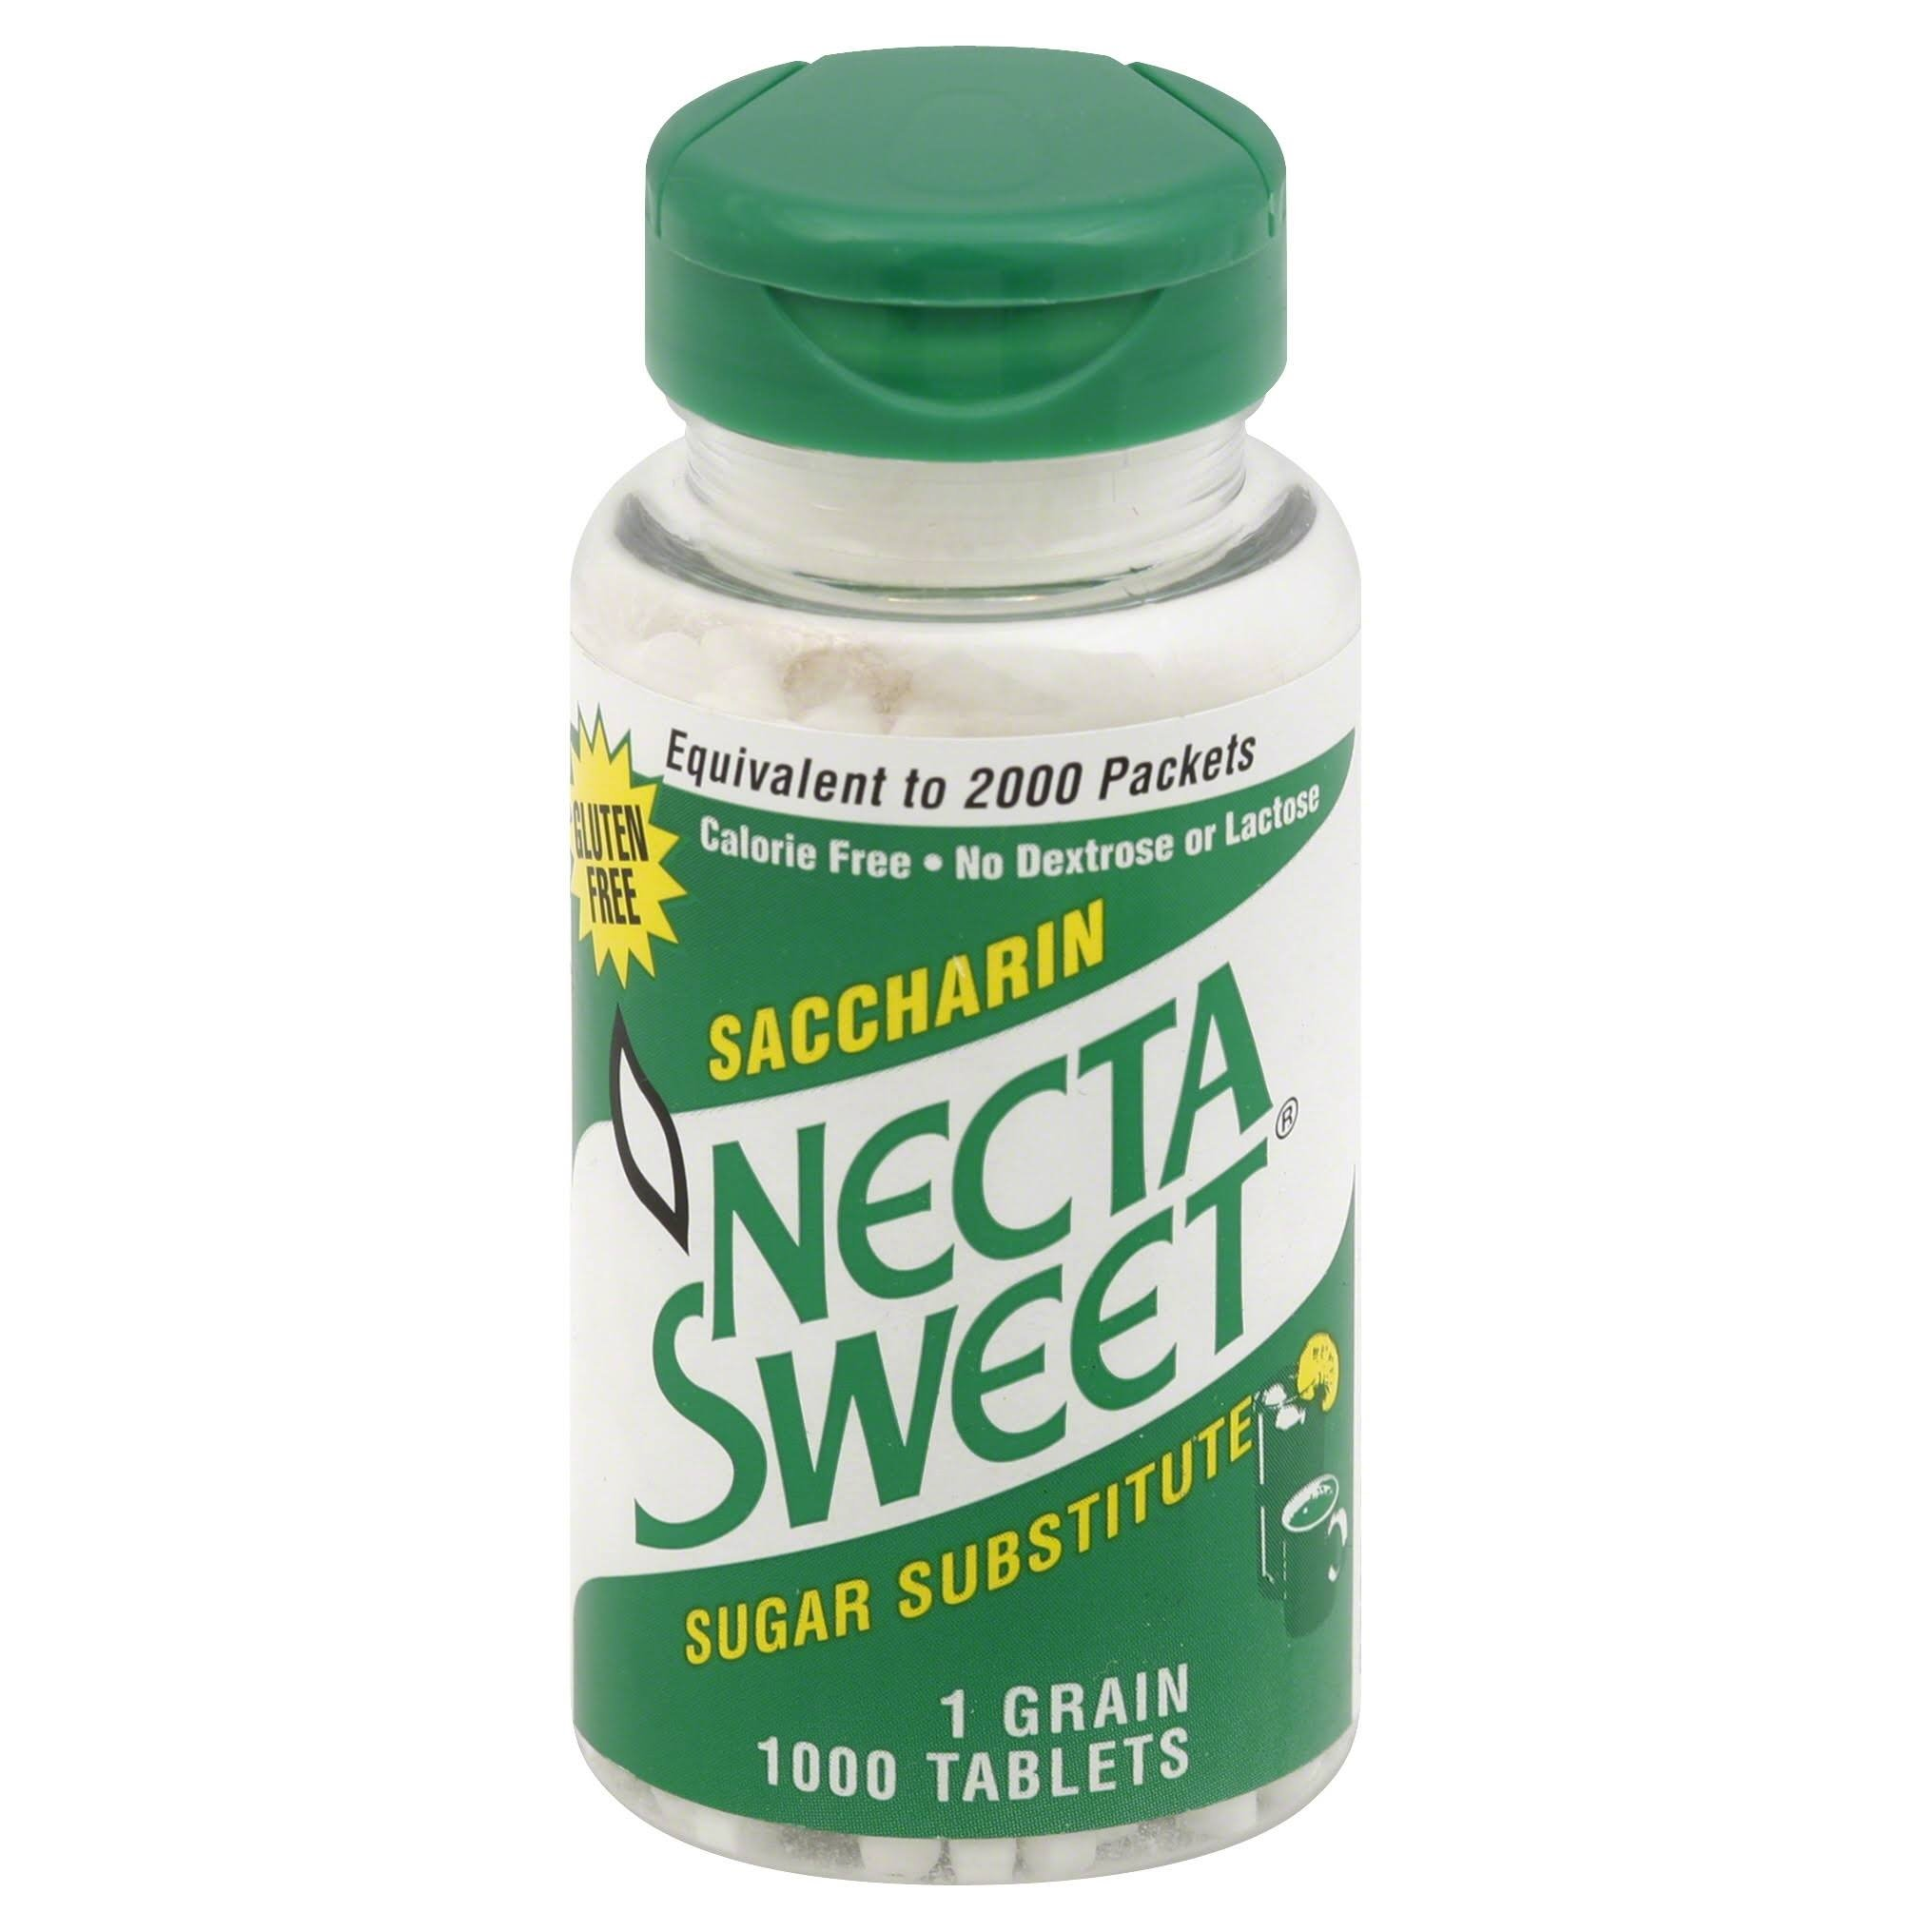 Necta Sweet Saccharin Tablets, 1 Grain, 1000 Tablet Bottle (Pack of 2) by Necta Sweet